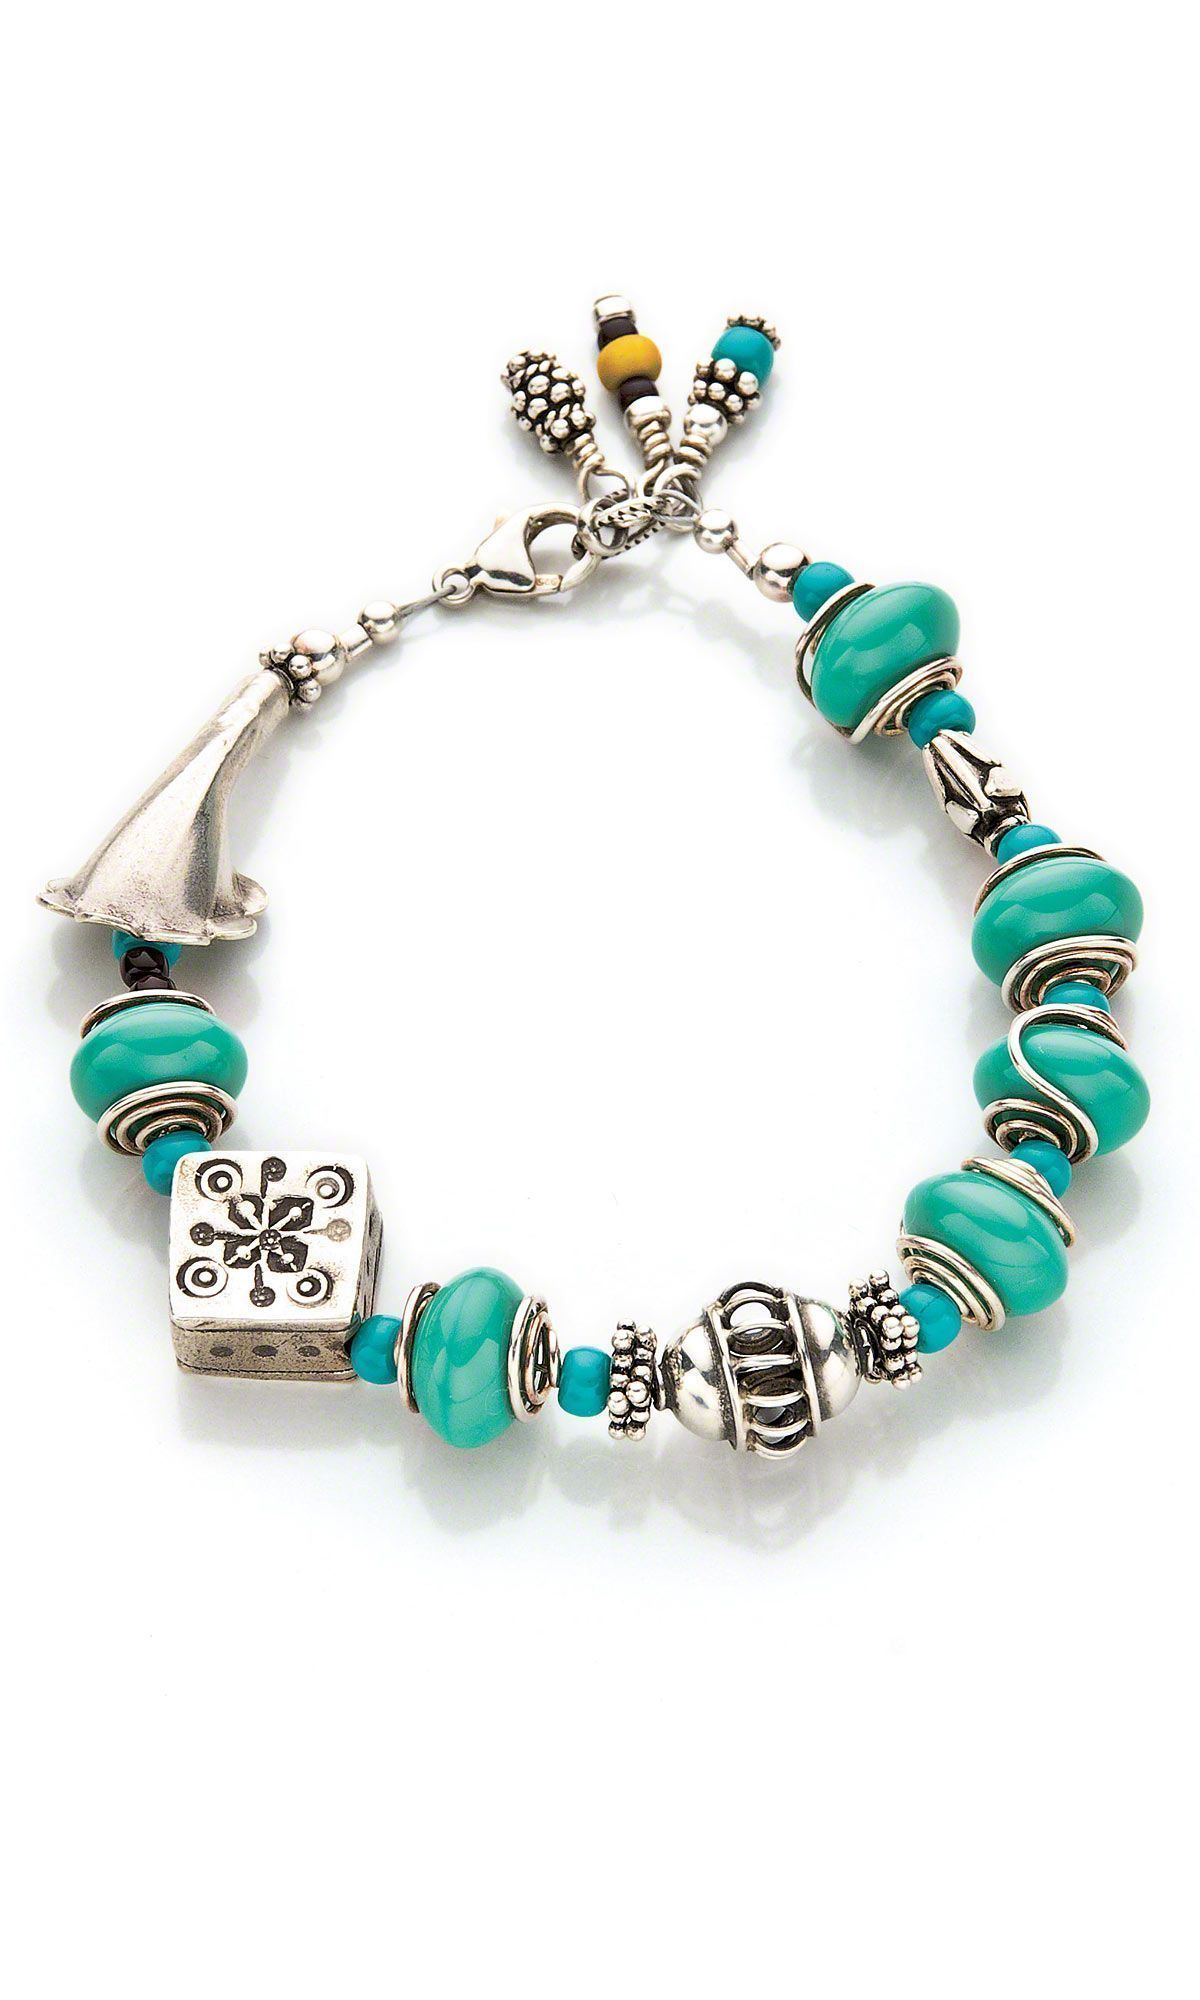 Jewelry design bracelet with sterling silver beads and glass beads